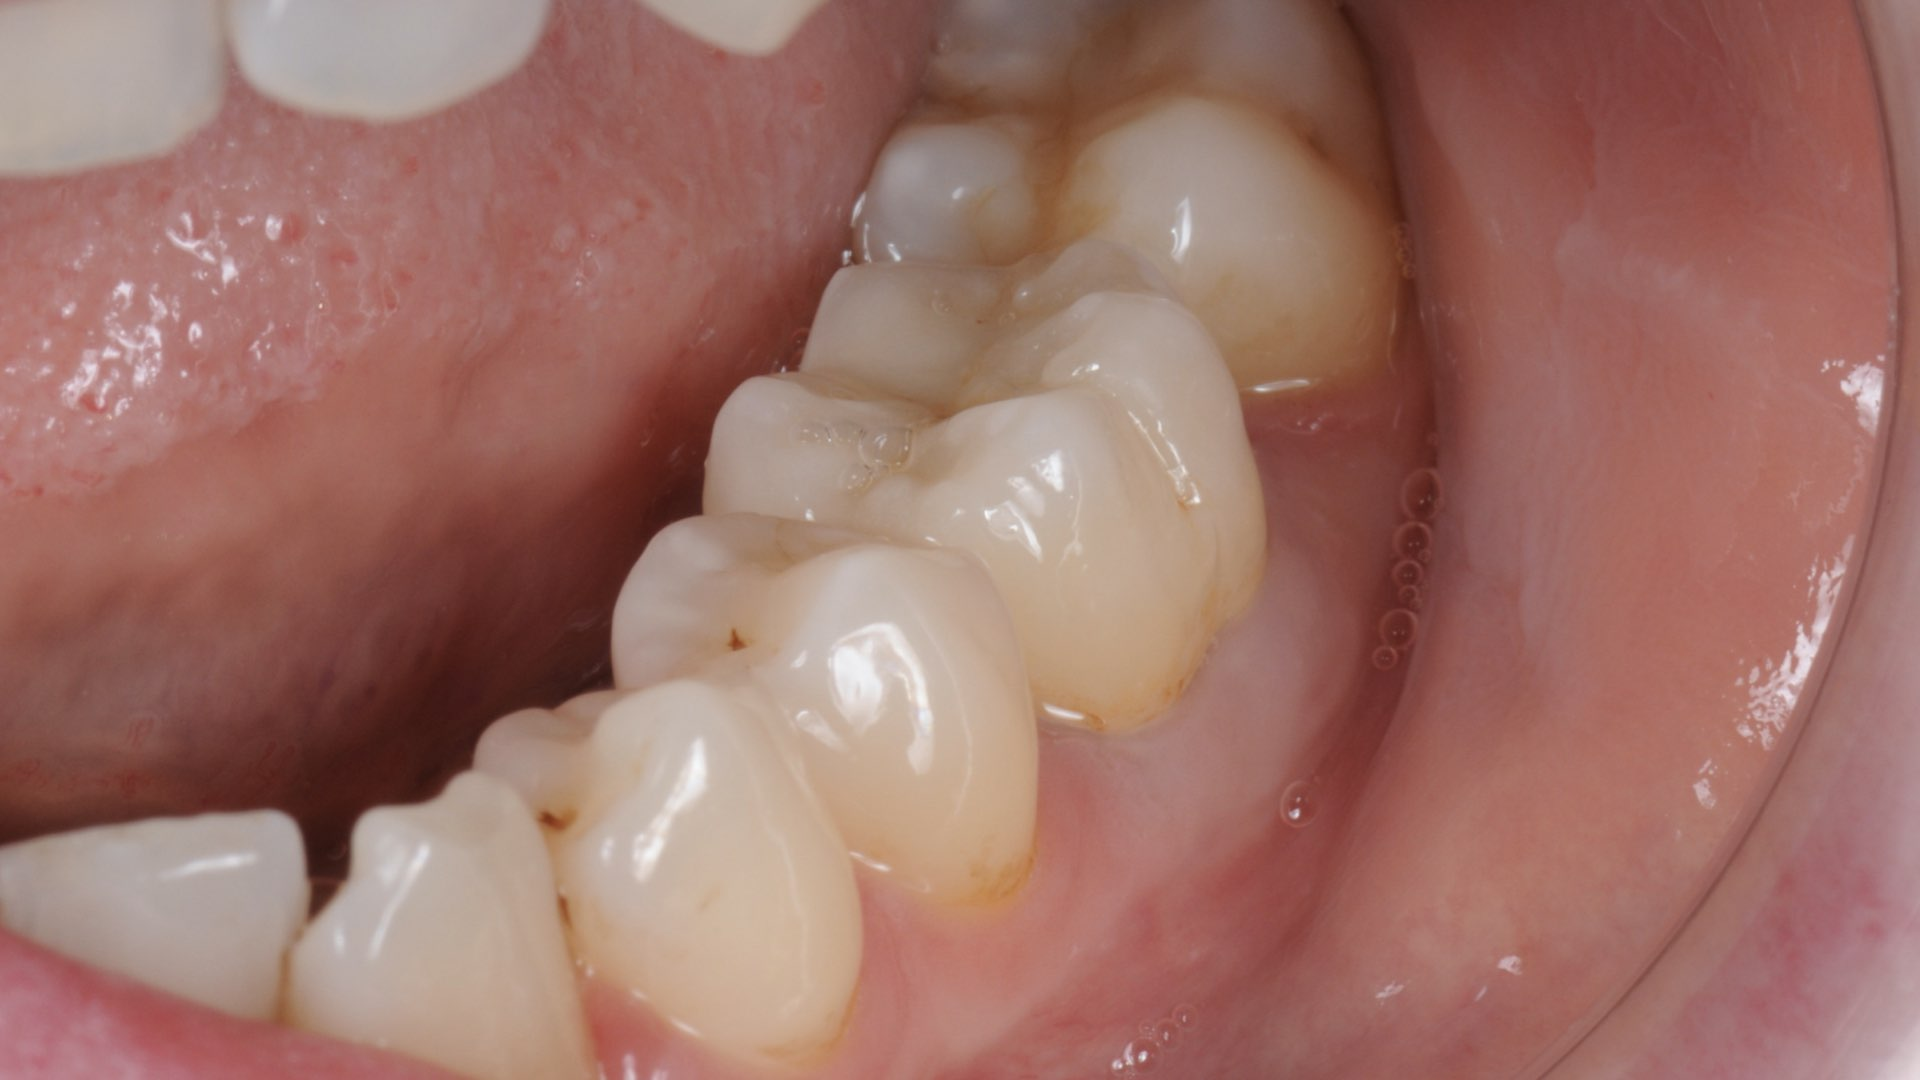 Clinical Case 4, picture 2:  Improved aesthetics with a zirconia layered restoration on first molar